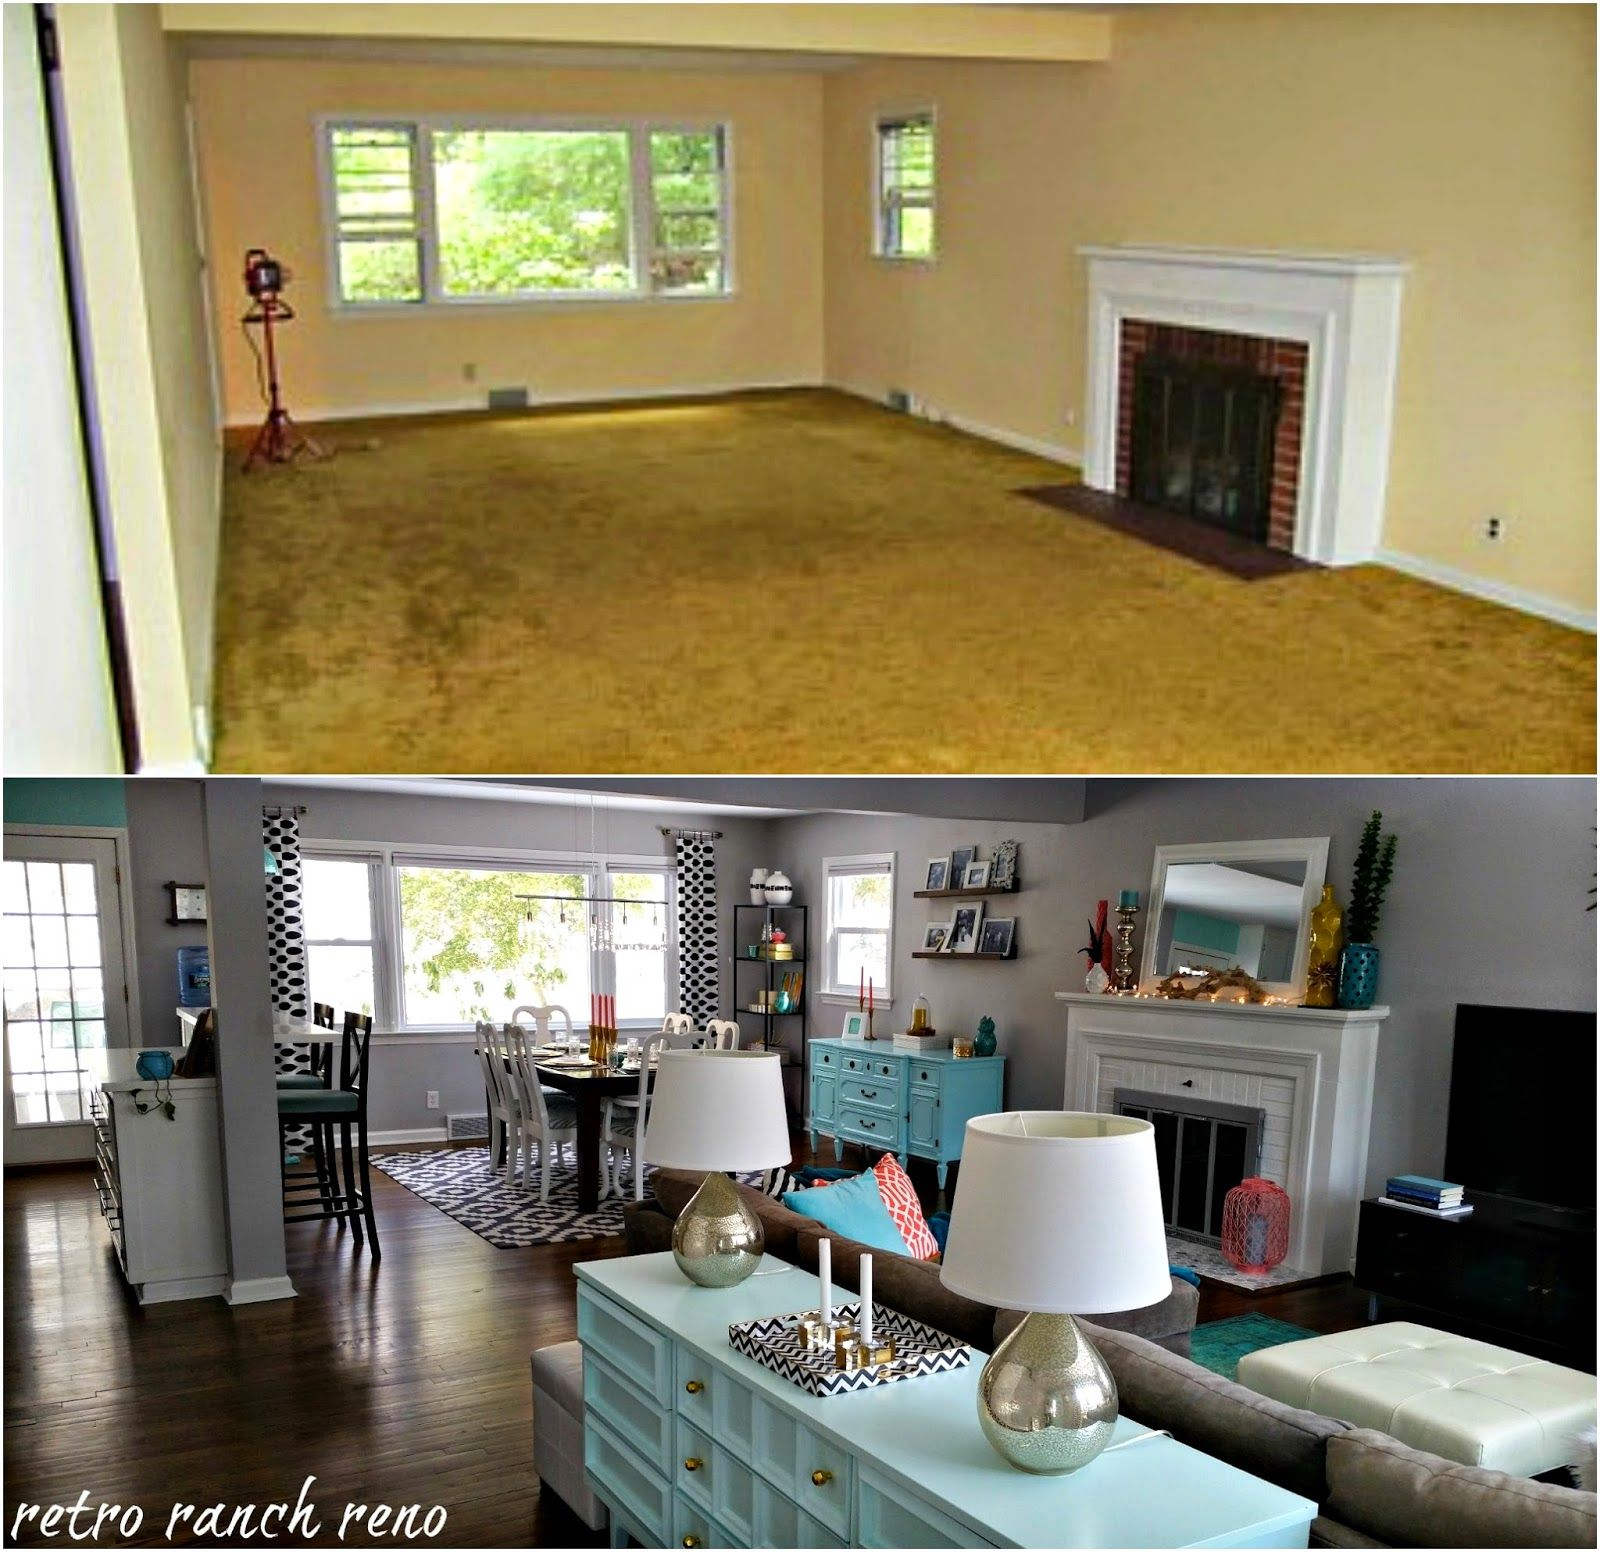 Apartment Kitchen Makeover: Retro Ranch Reno: Our Rancher: Before & After